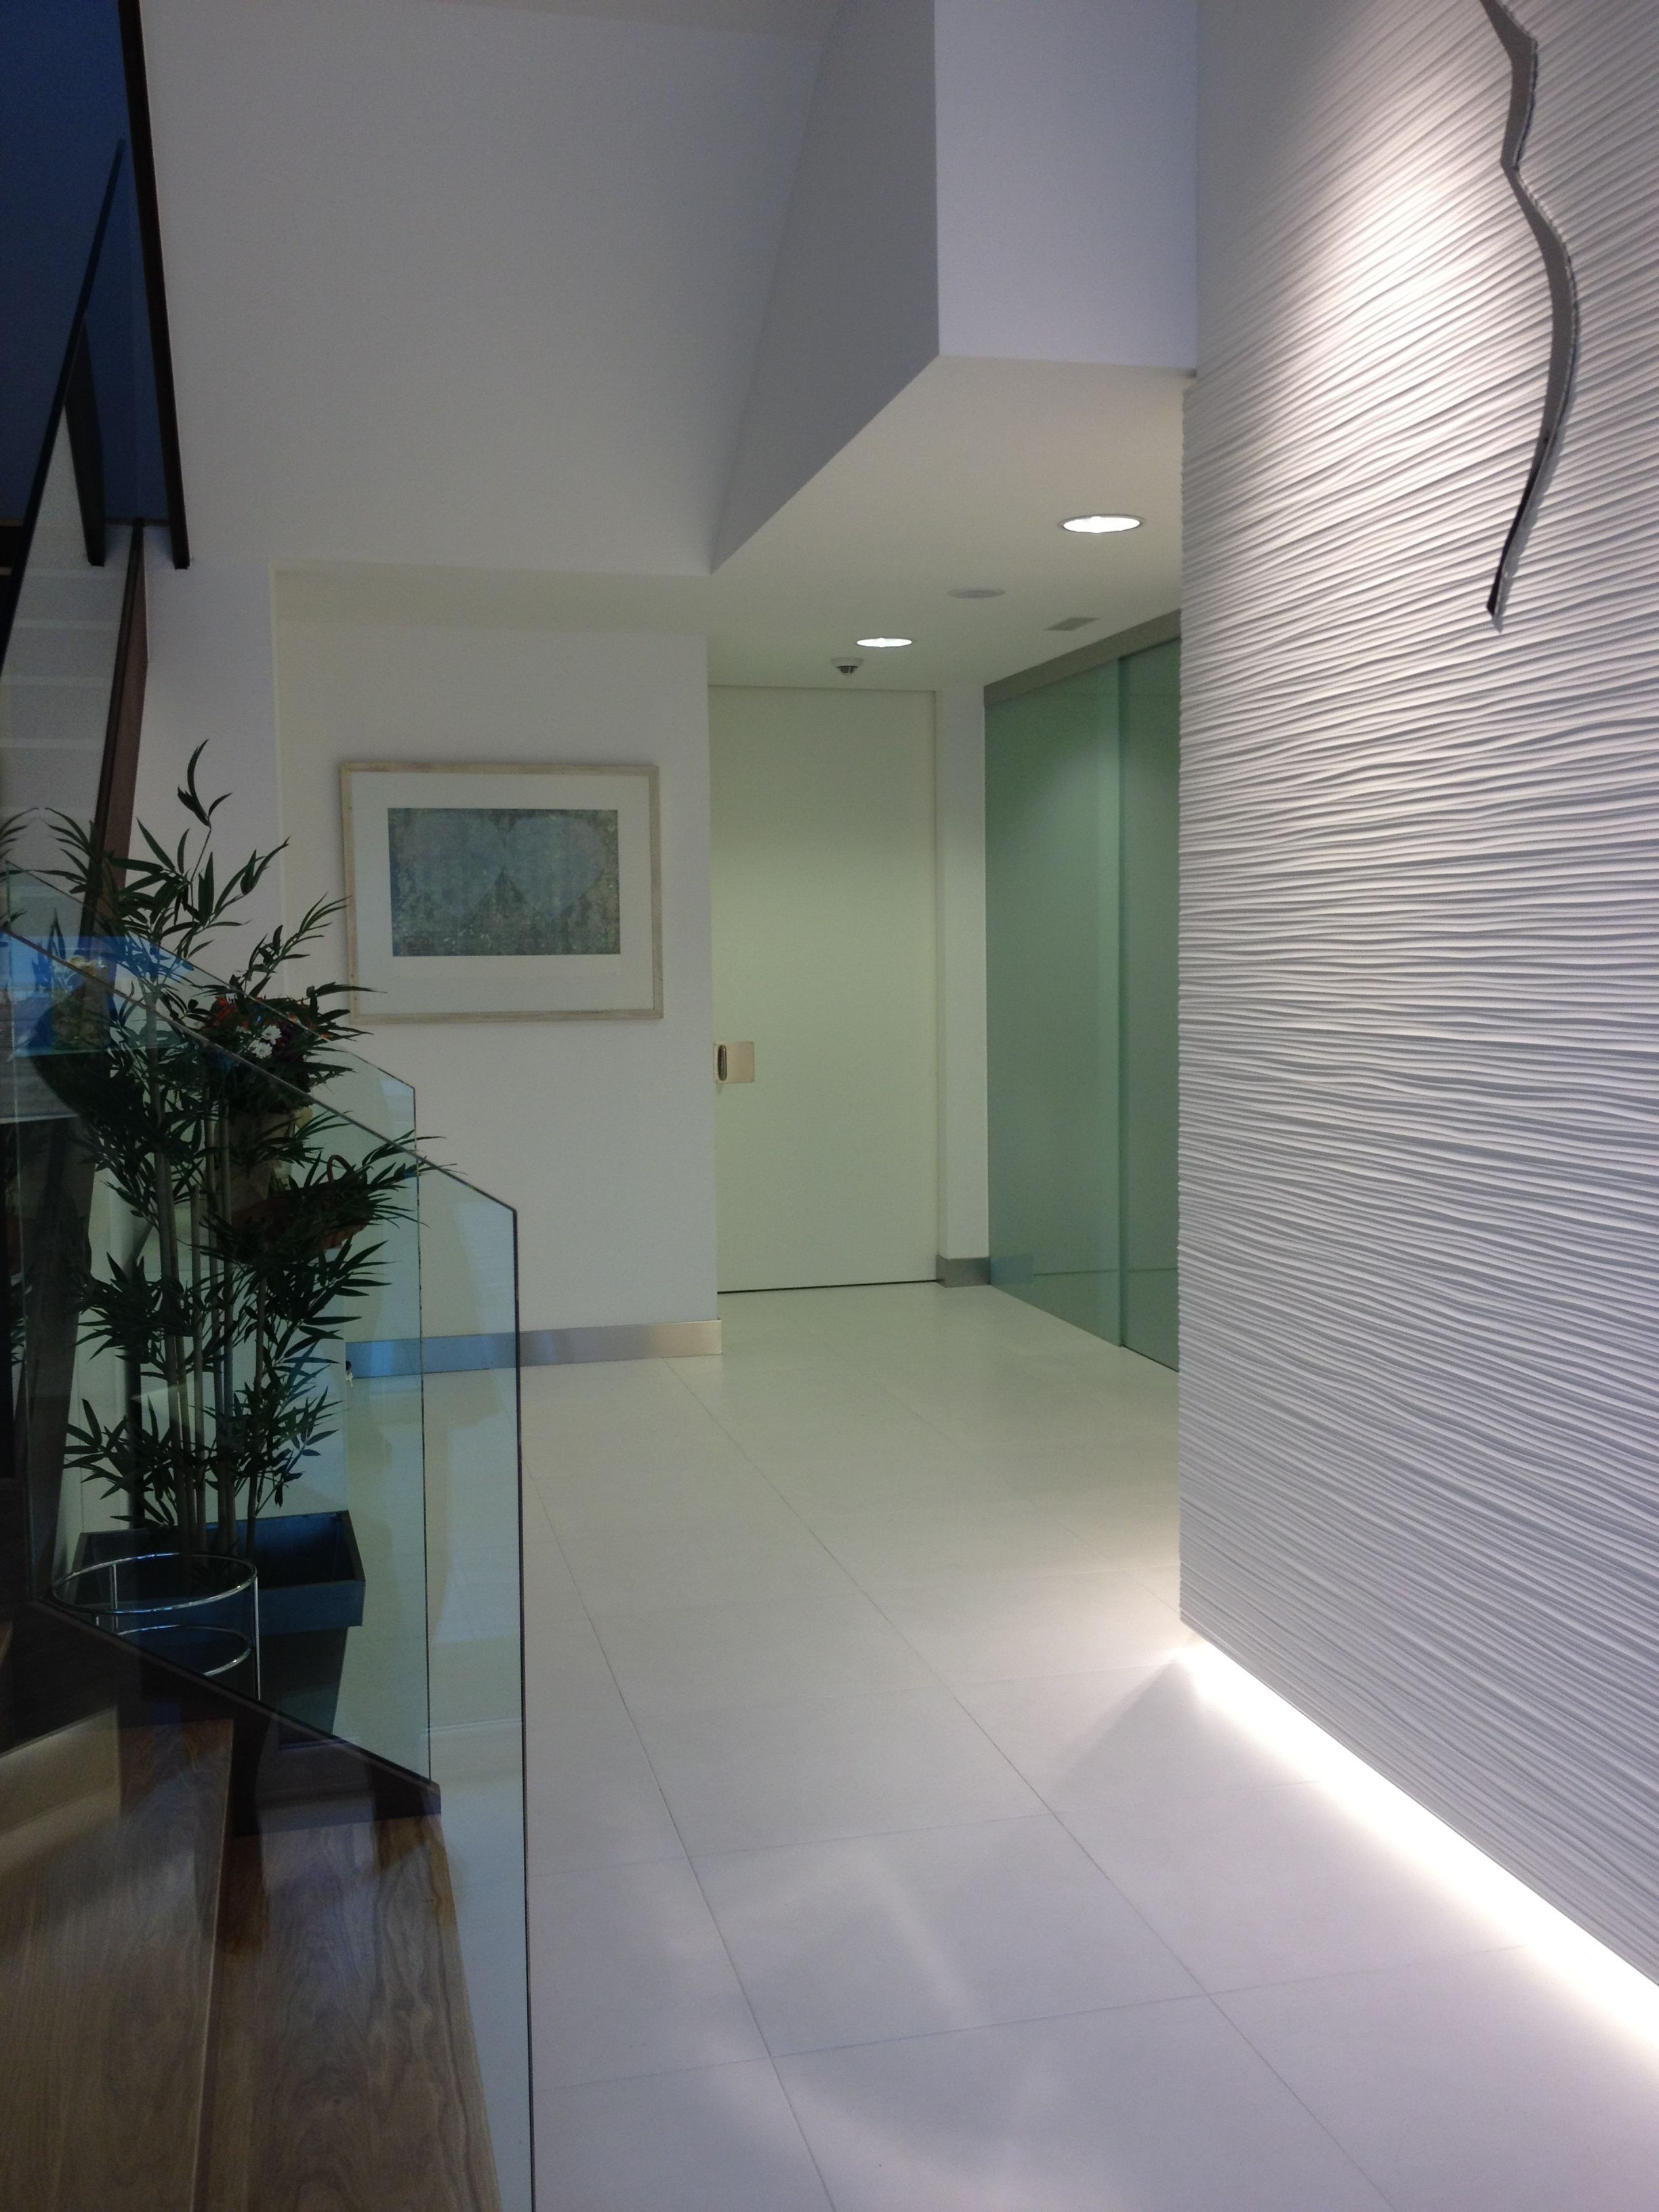 Stairs and reception in assitance reproduction clinic in santiago de